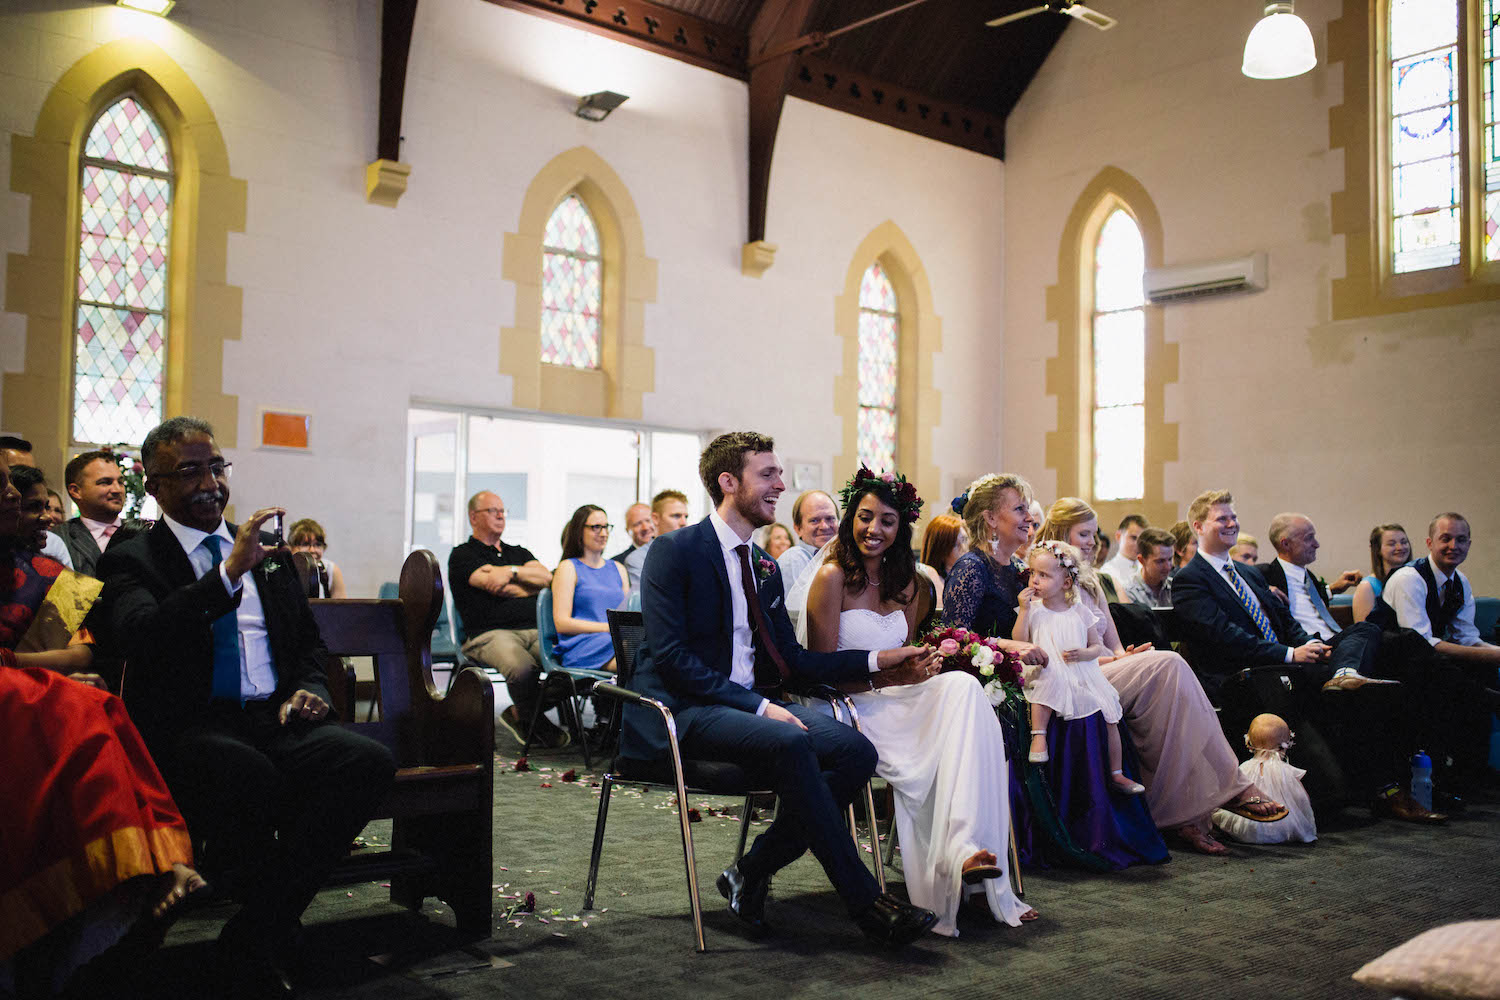 The bride & groom during the sermon after their ceremony at St Matthew's Anglican Church, Perth.